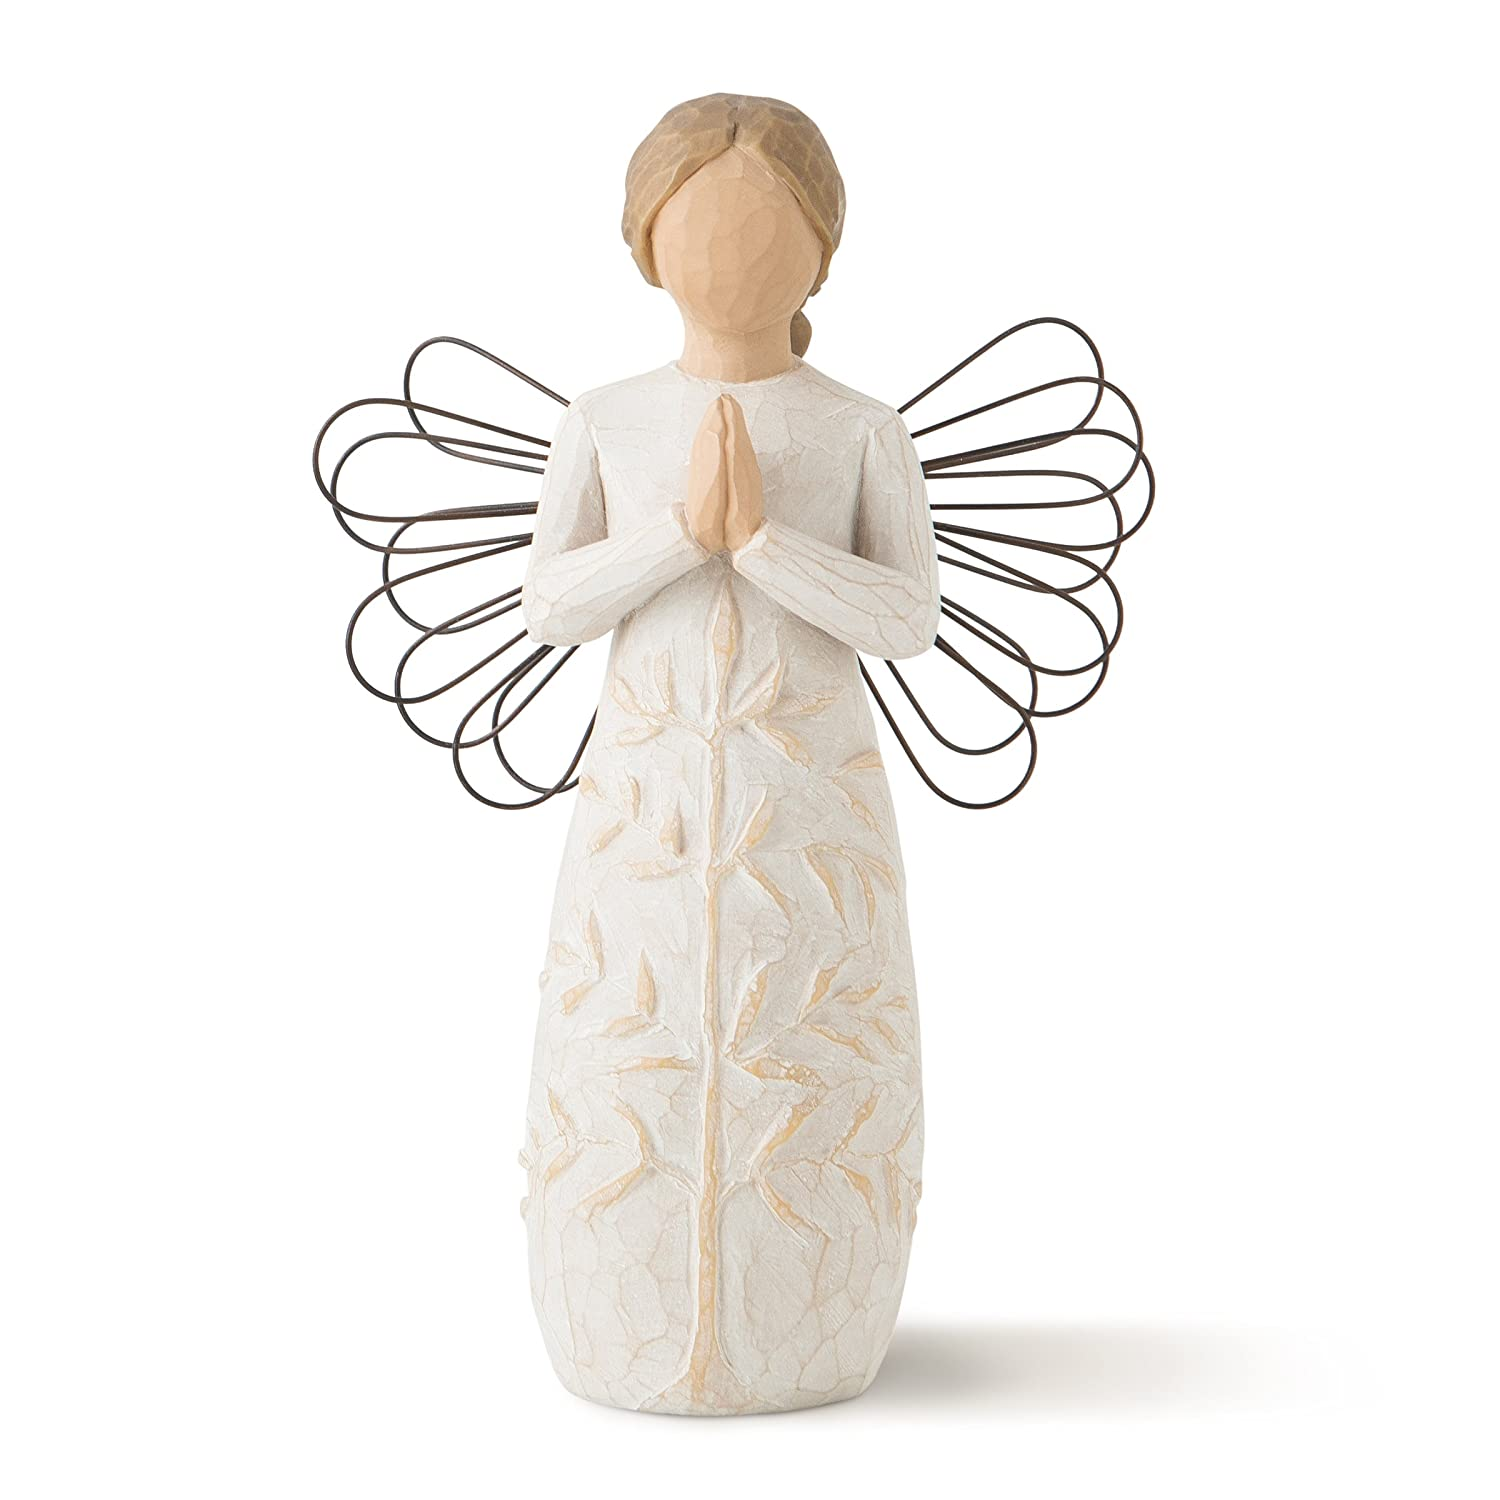 Willow Tree hand-painted sculpted angel, a tree, a prayer Susan Lordi DEMDACO - Home 26170